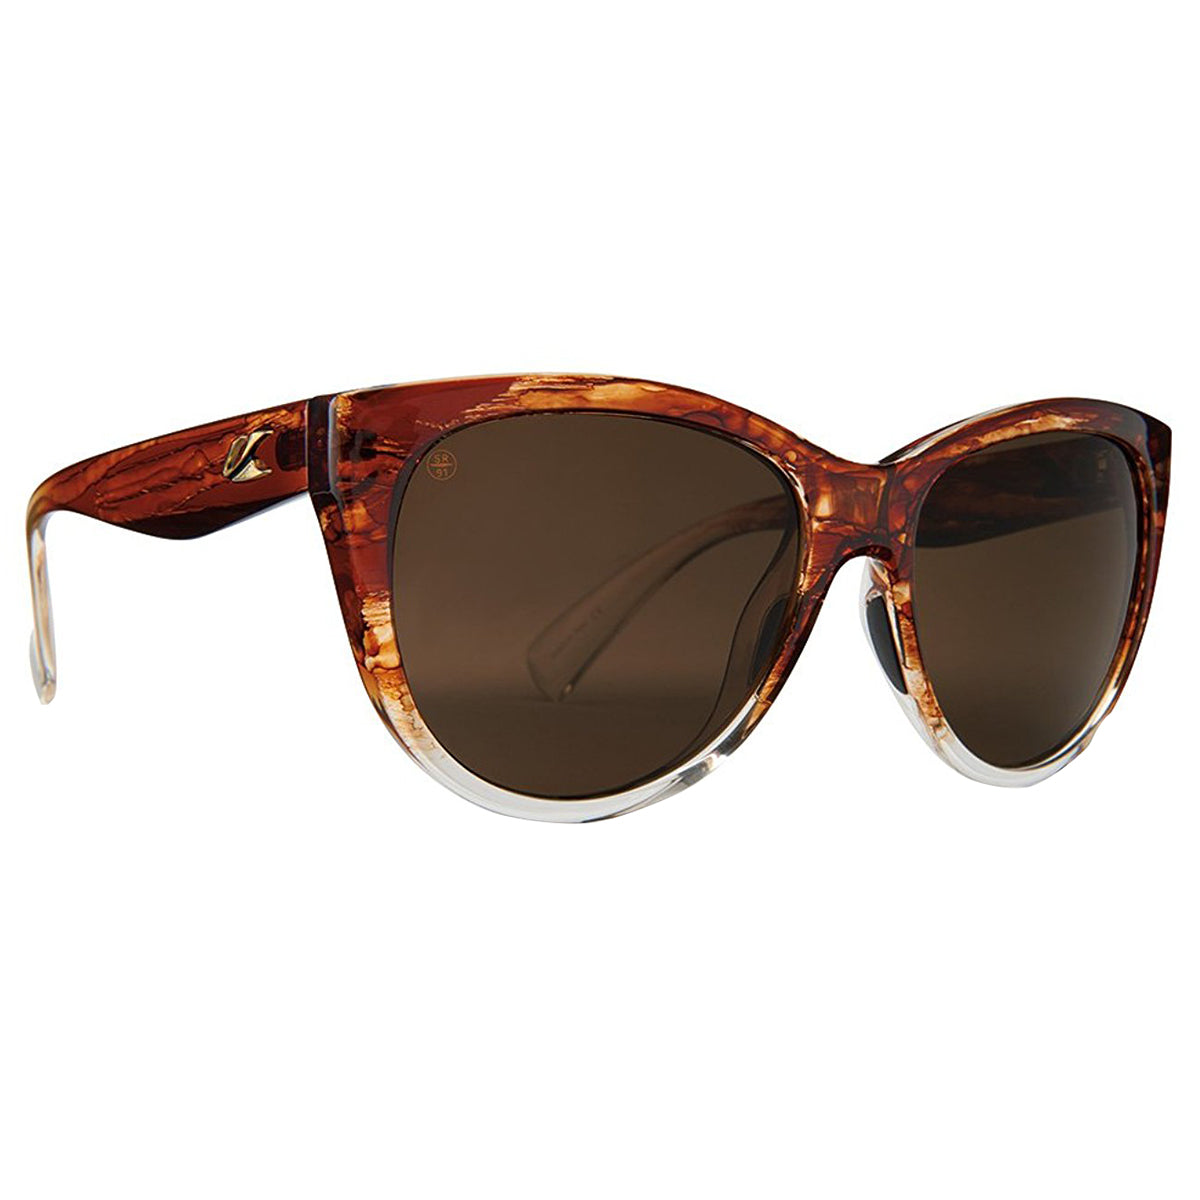 Kaenon Palisades Adult Lifestyle Polarized Sunglasses - Sepia / Brown